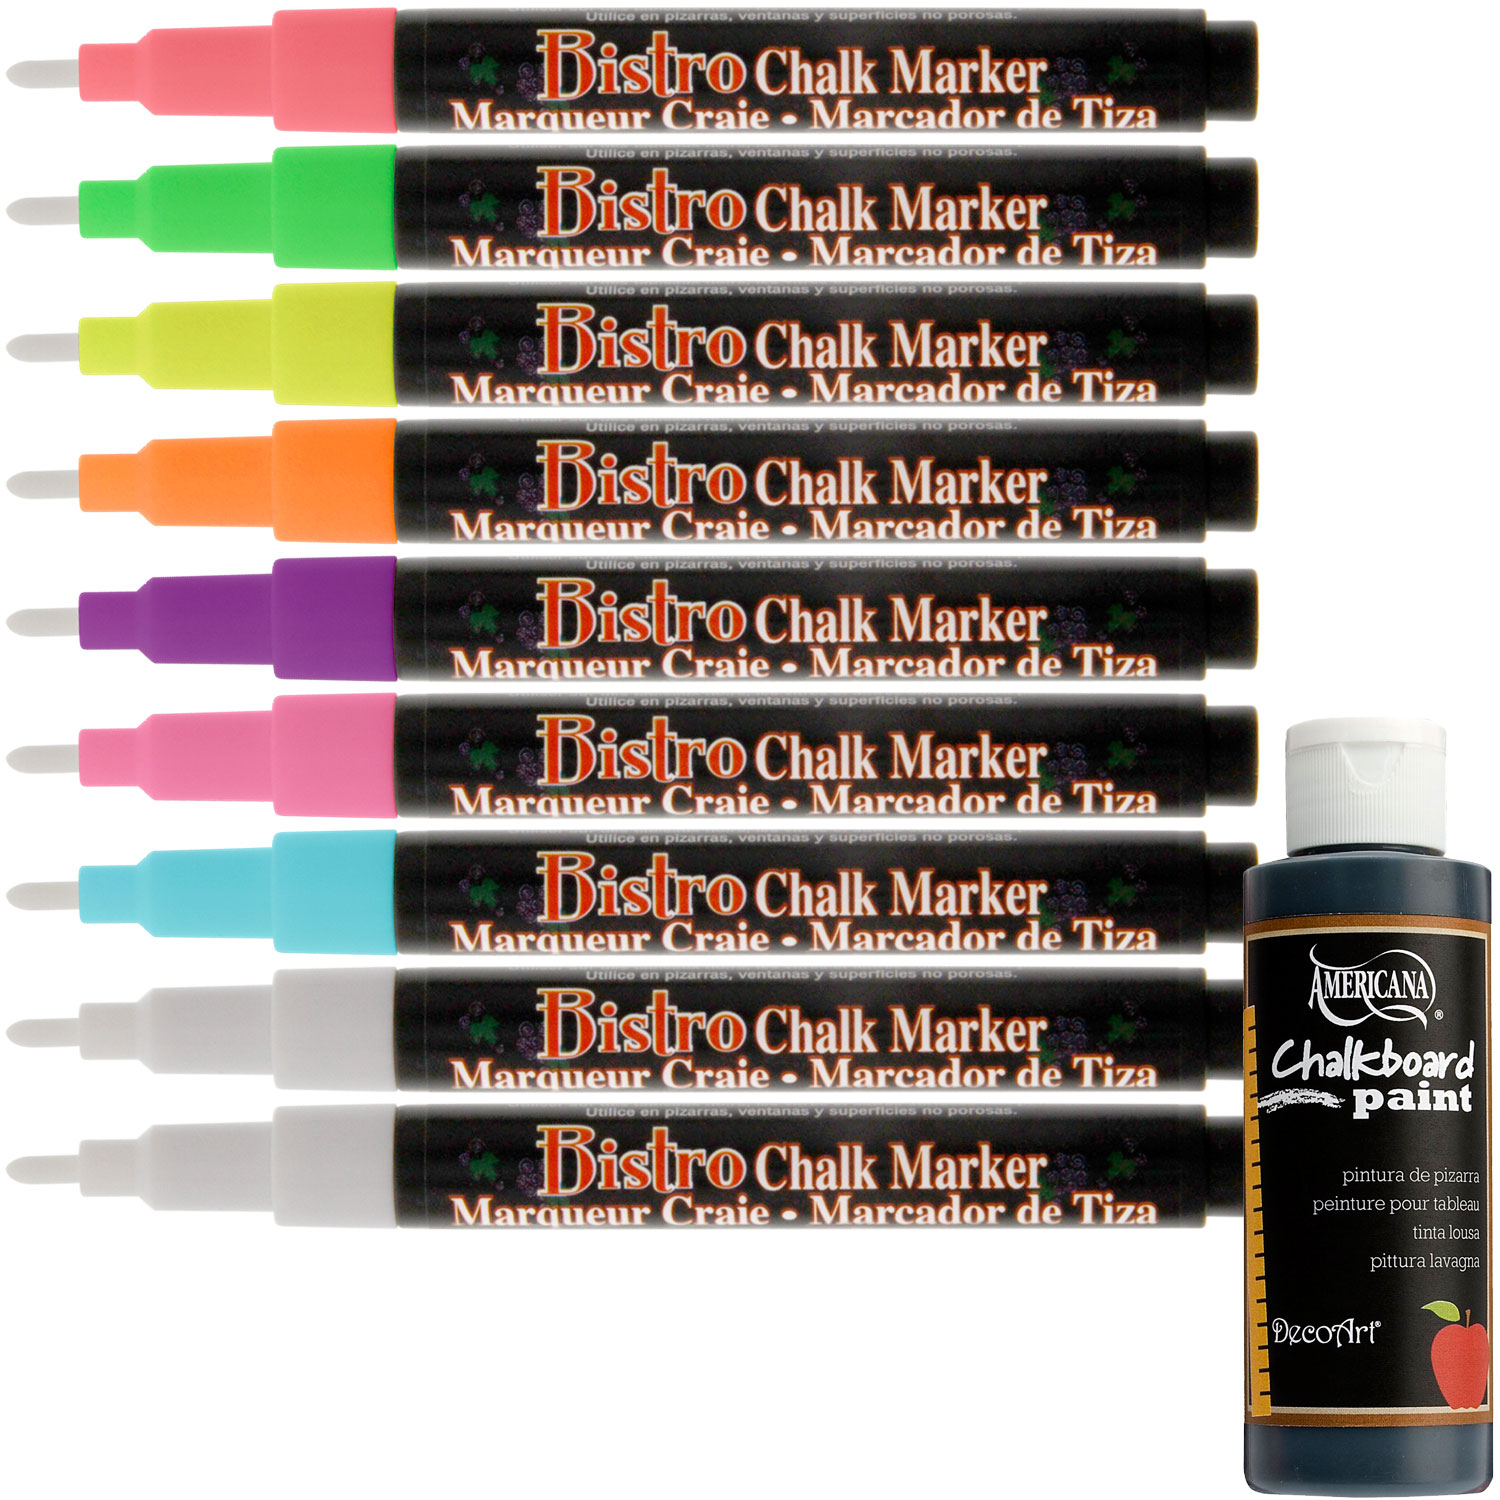 Uchida BISTRO CHALK MARKERS Fine Point 9 Fluorescent Color Set 3mm Chalkboard